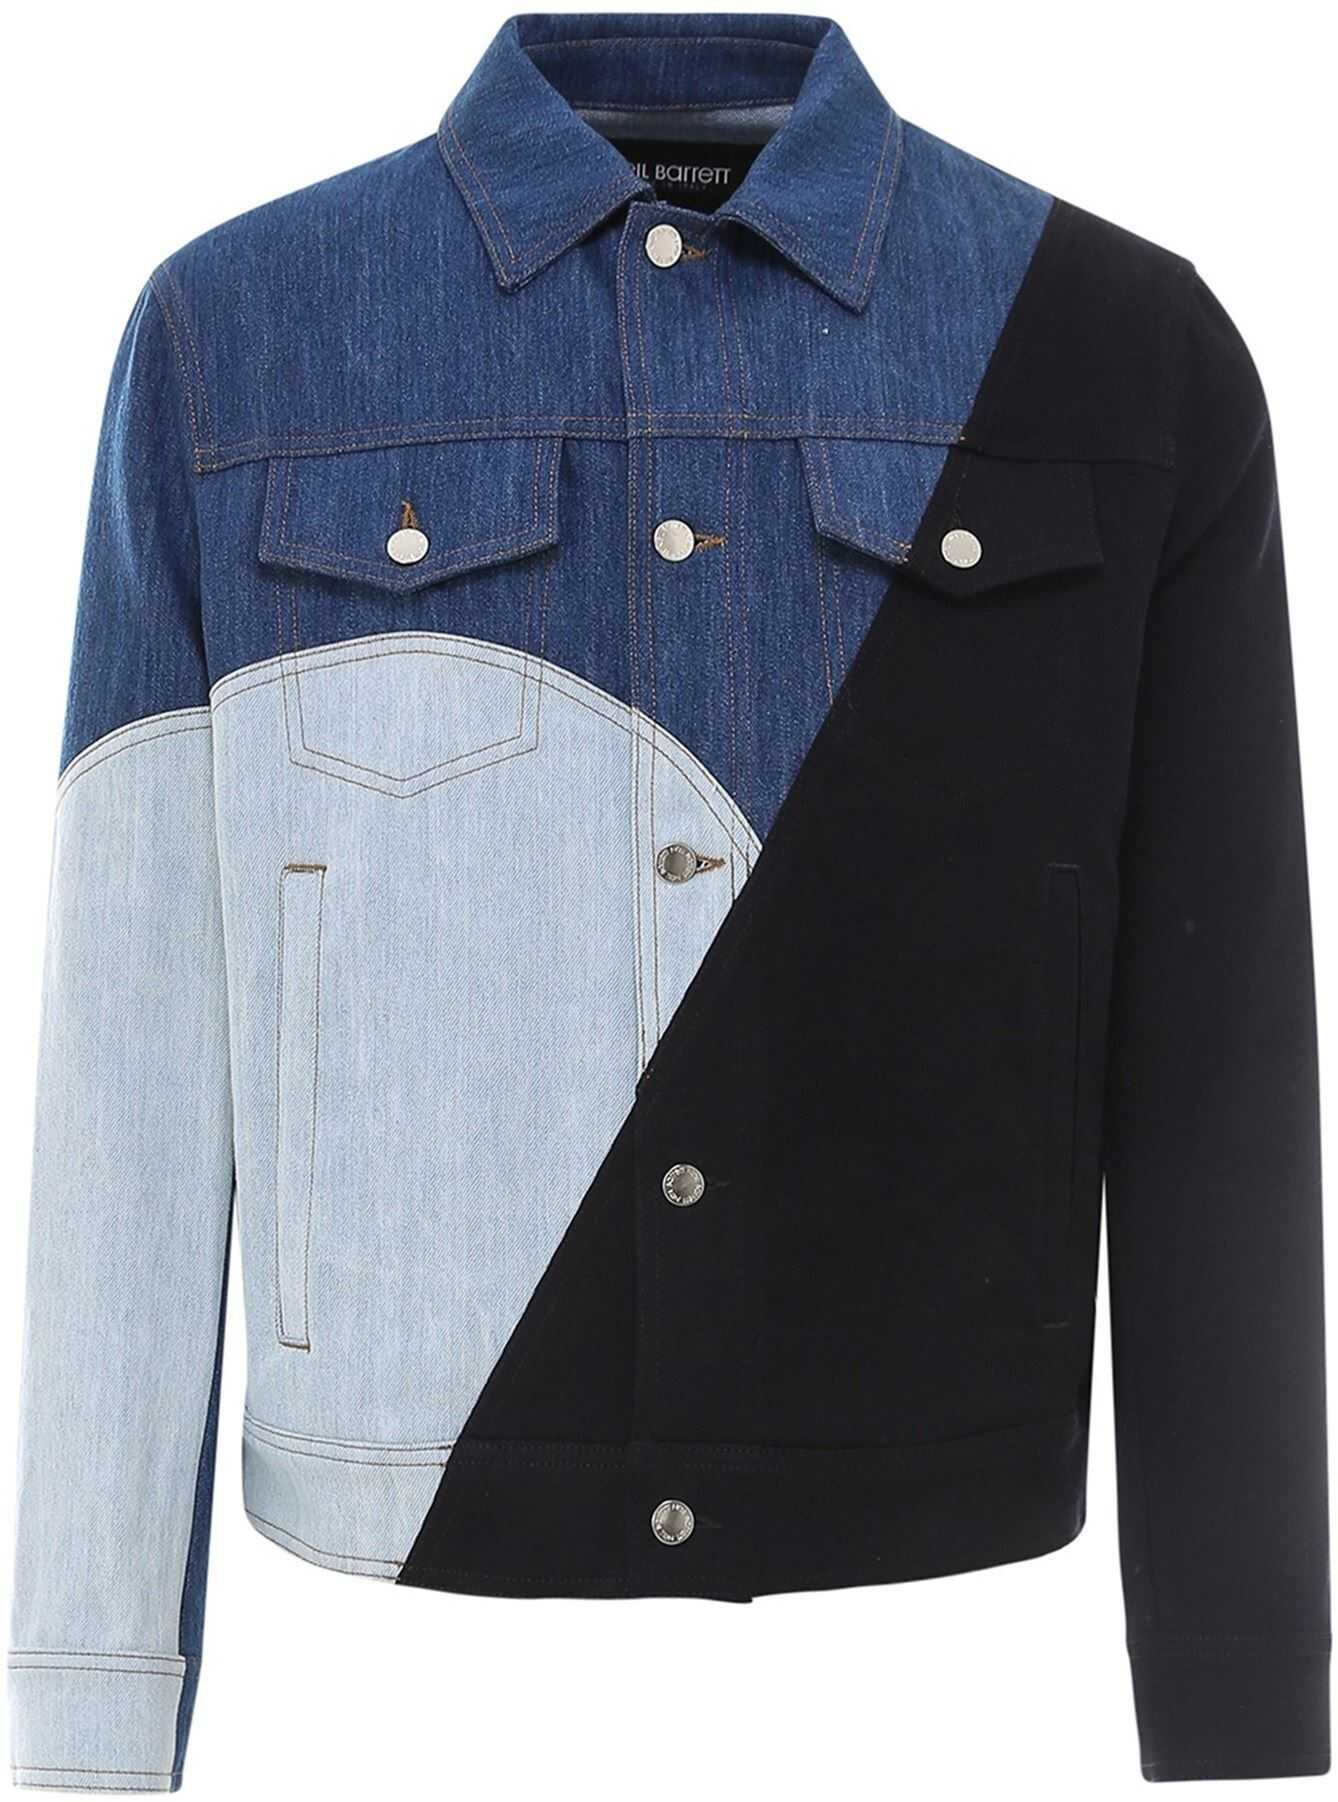 Neil Barrett Denim-Block Jacket Blue imagine